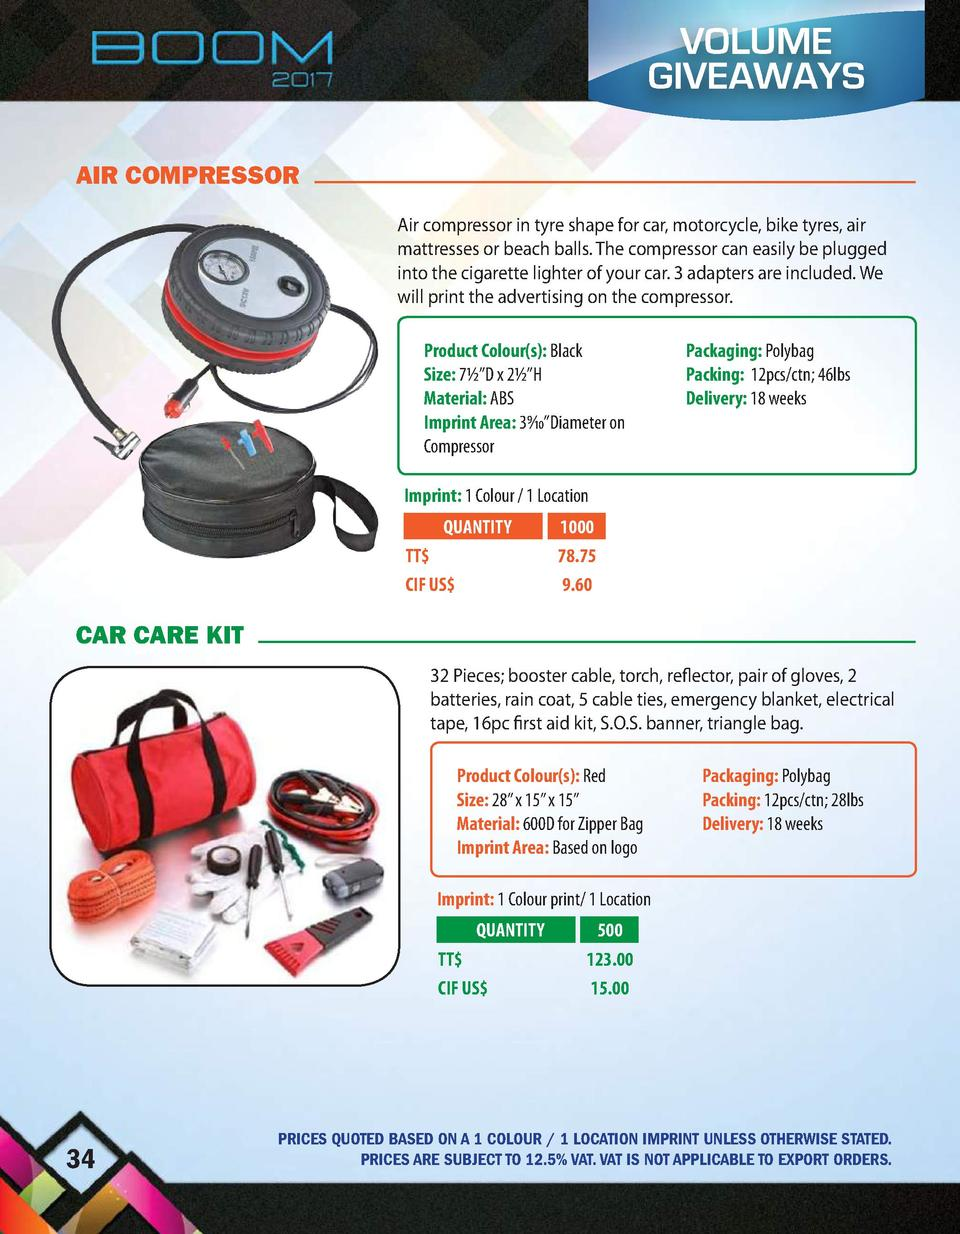 VOLUME GIVEAWAYS AIR COMPRESSOR Air compressor in tyre shape for car, motorcycle, bike tyres, air mattresses or beach ball...